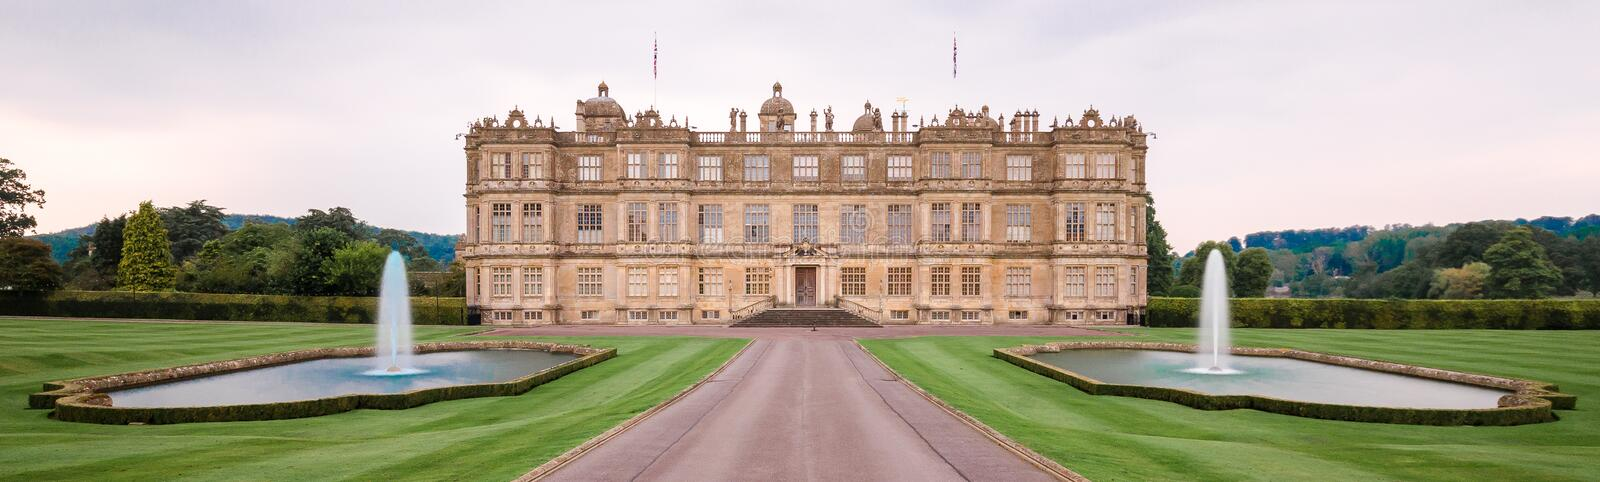 Longleat House and fountains. The house of Lord Bath with fountains in foreground stock photo